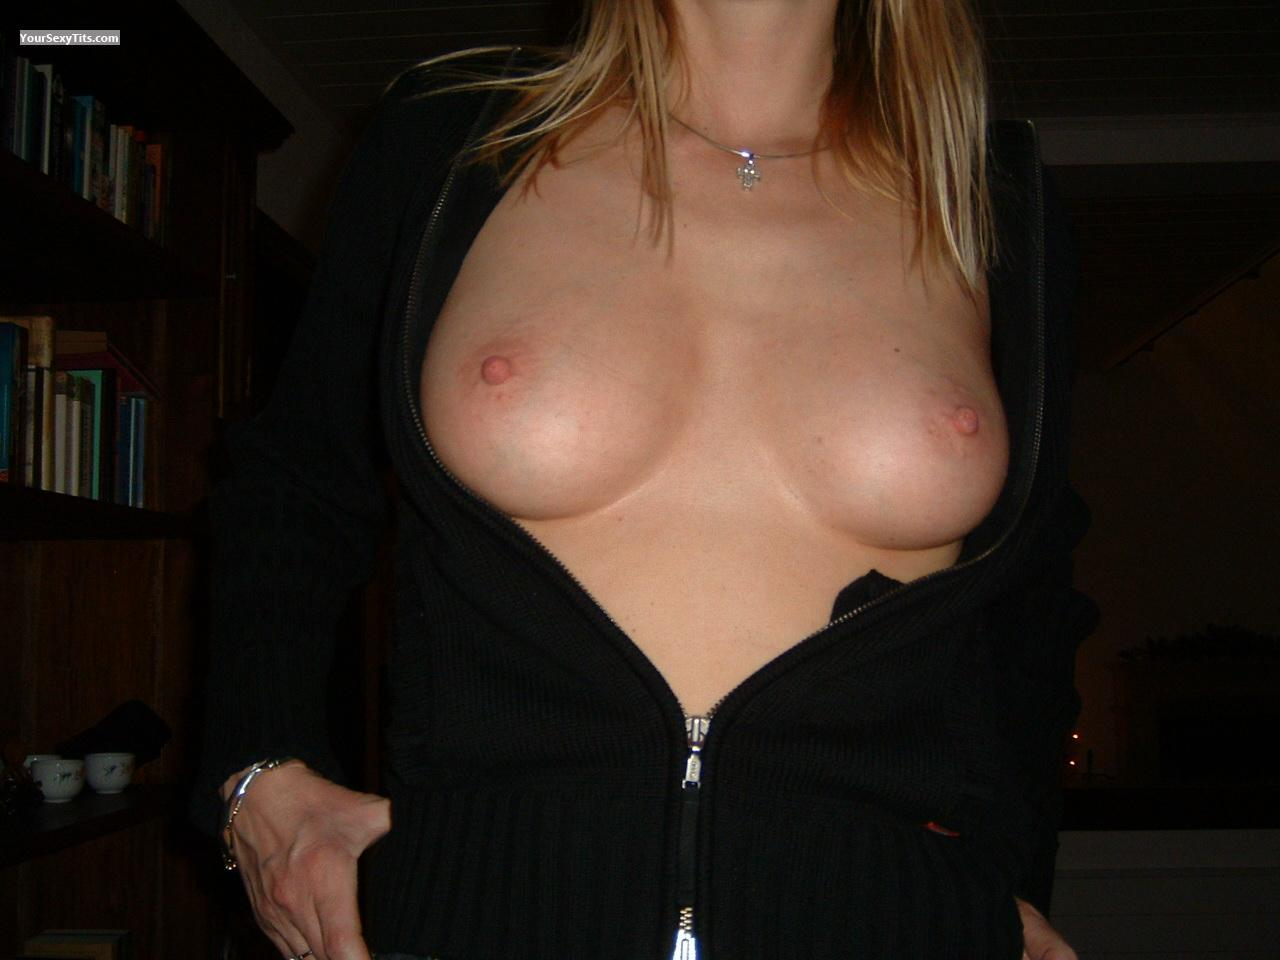 Tit Flash: Medium Tits - Mehin from United Kingdom